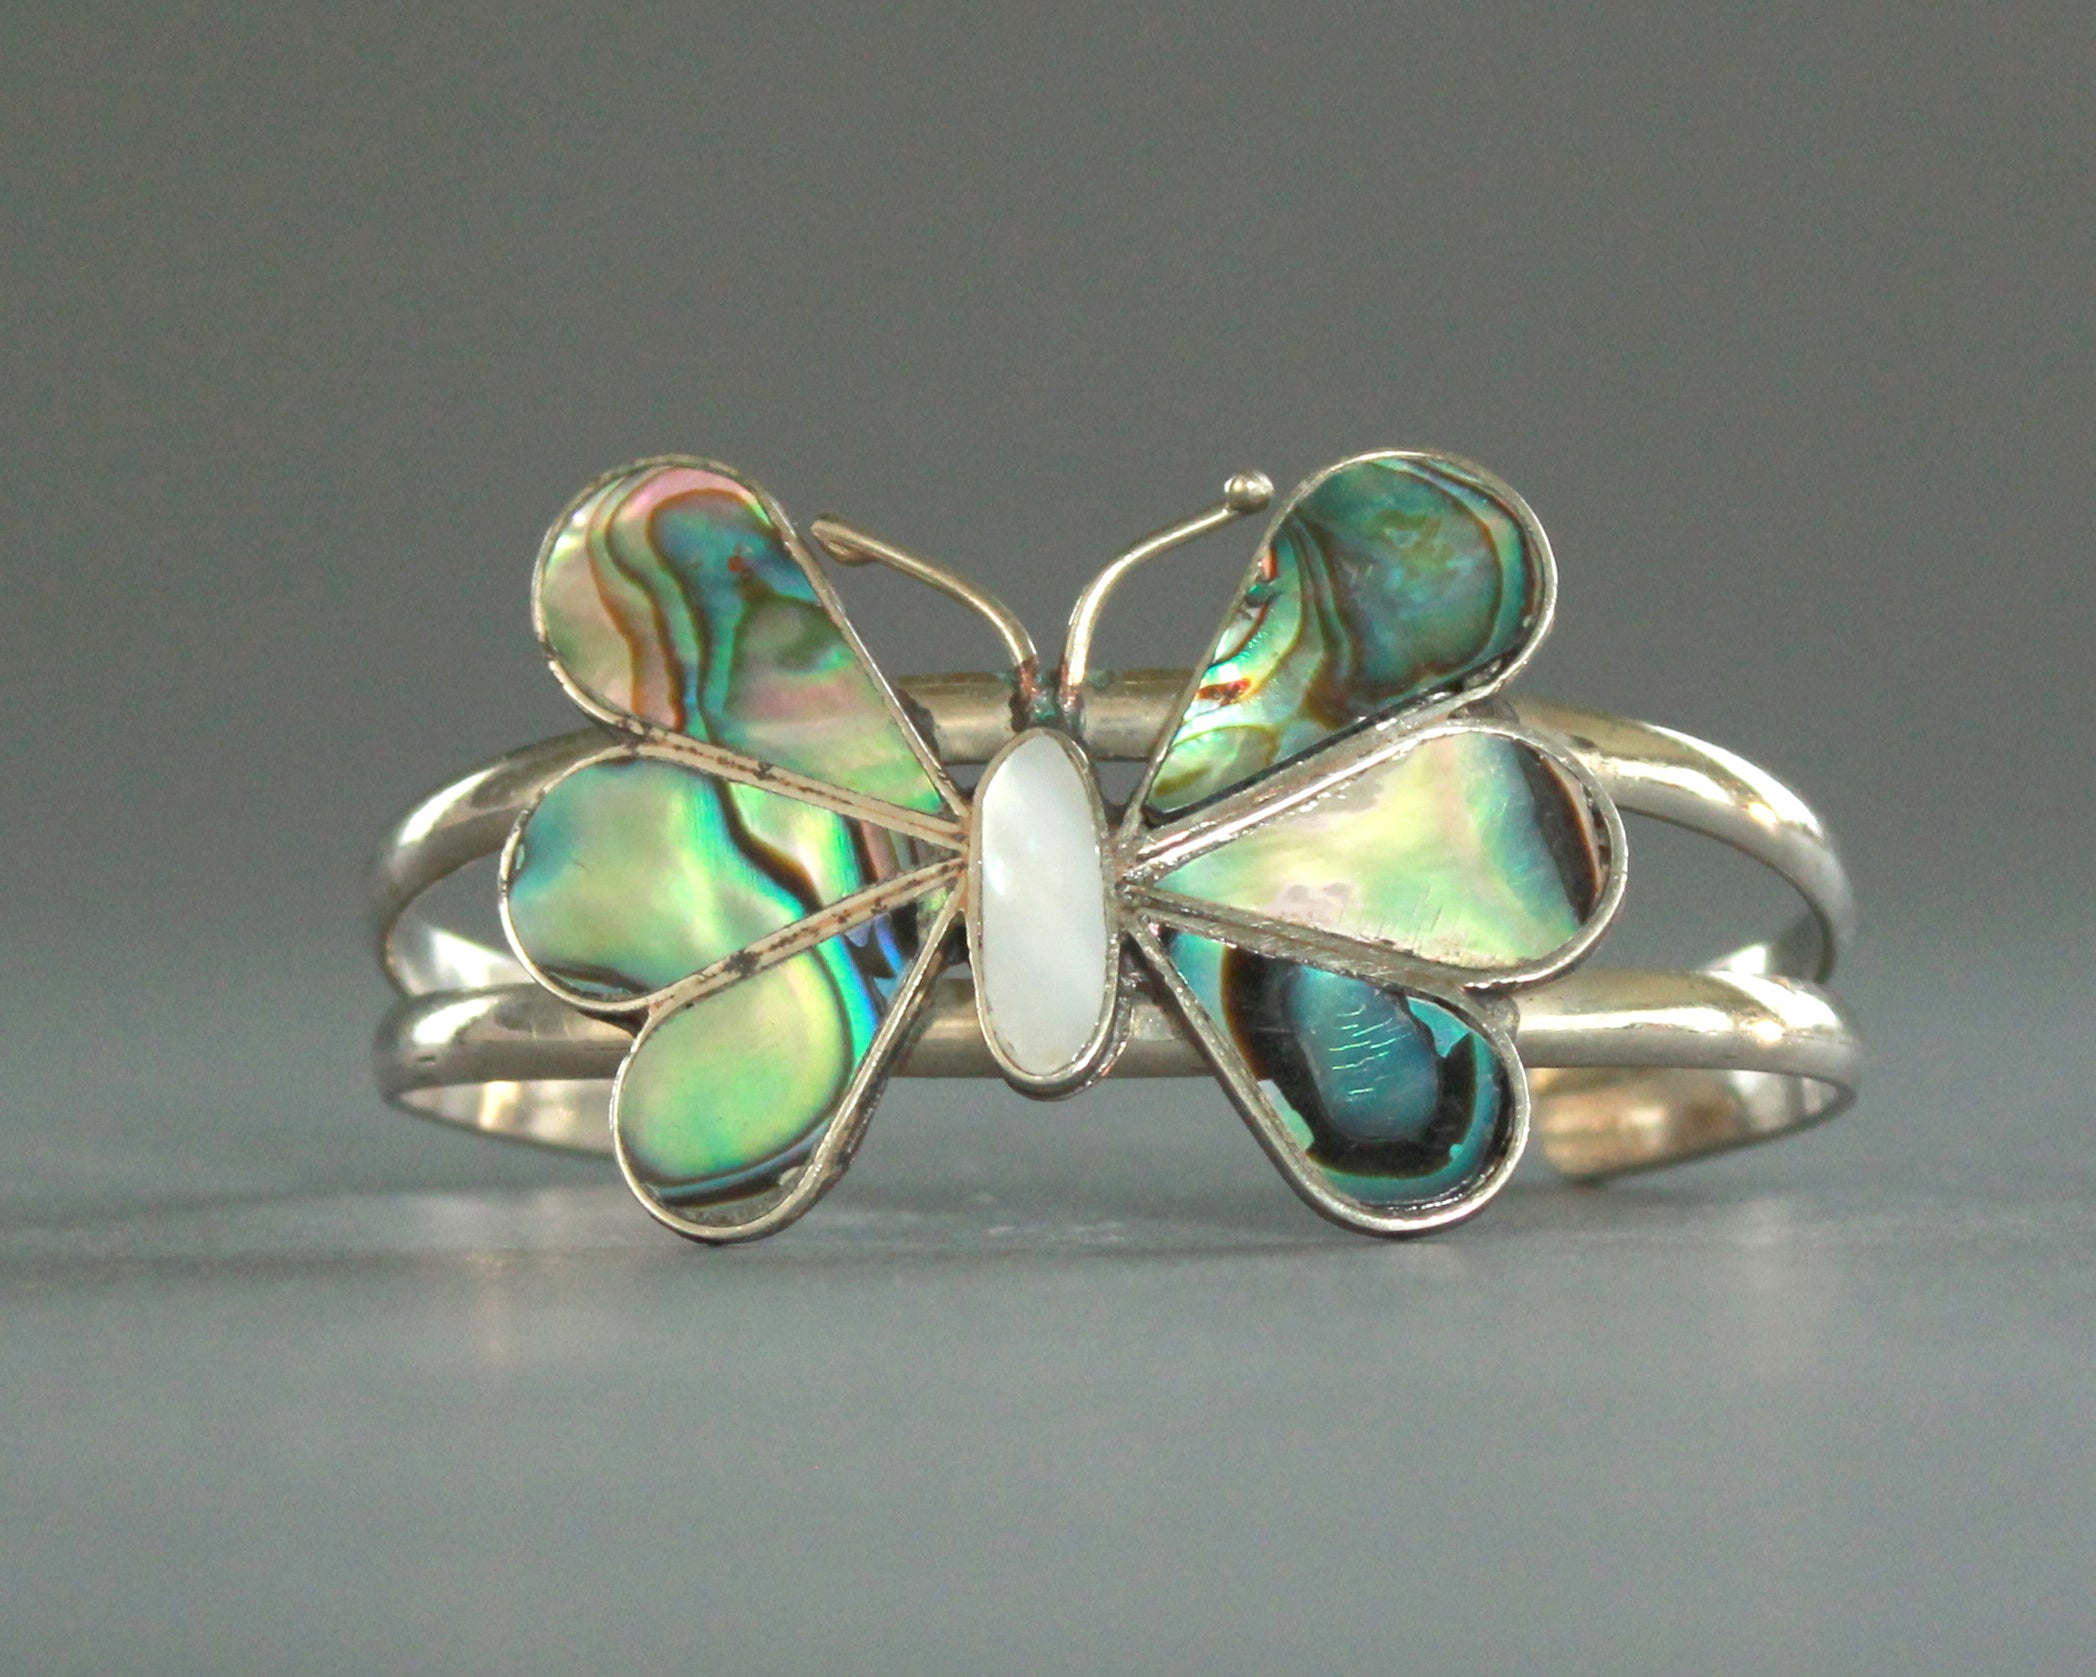 Abalone butterfly bracelet handmade in Mexico